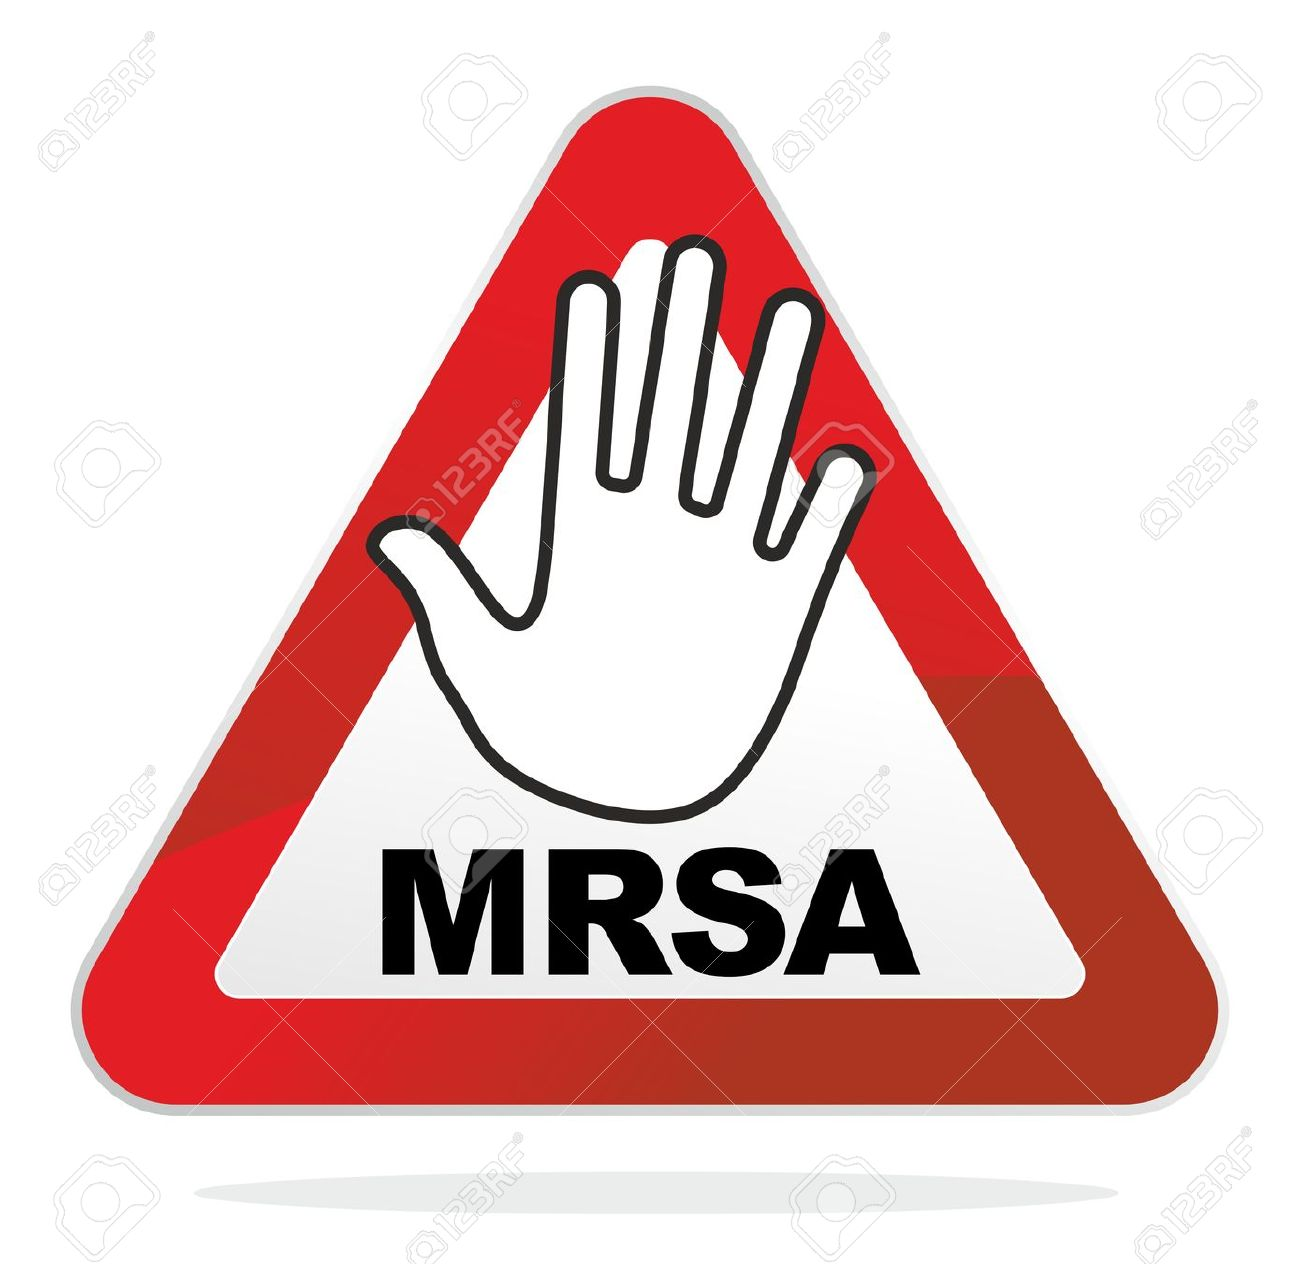 156 Mrsa Stock Vector Illustration And Royalty Free Mrsa Clipart.